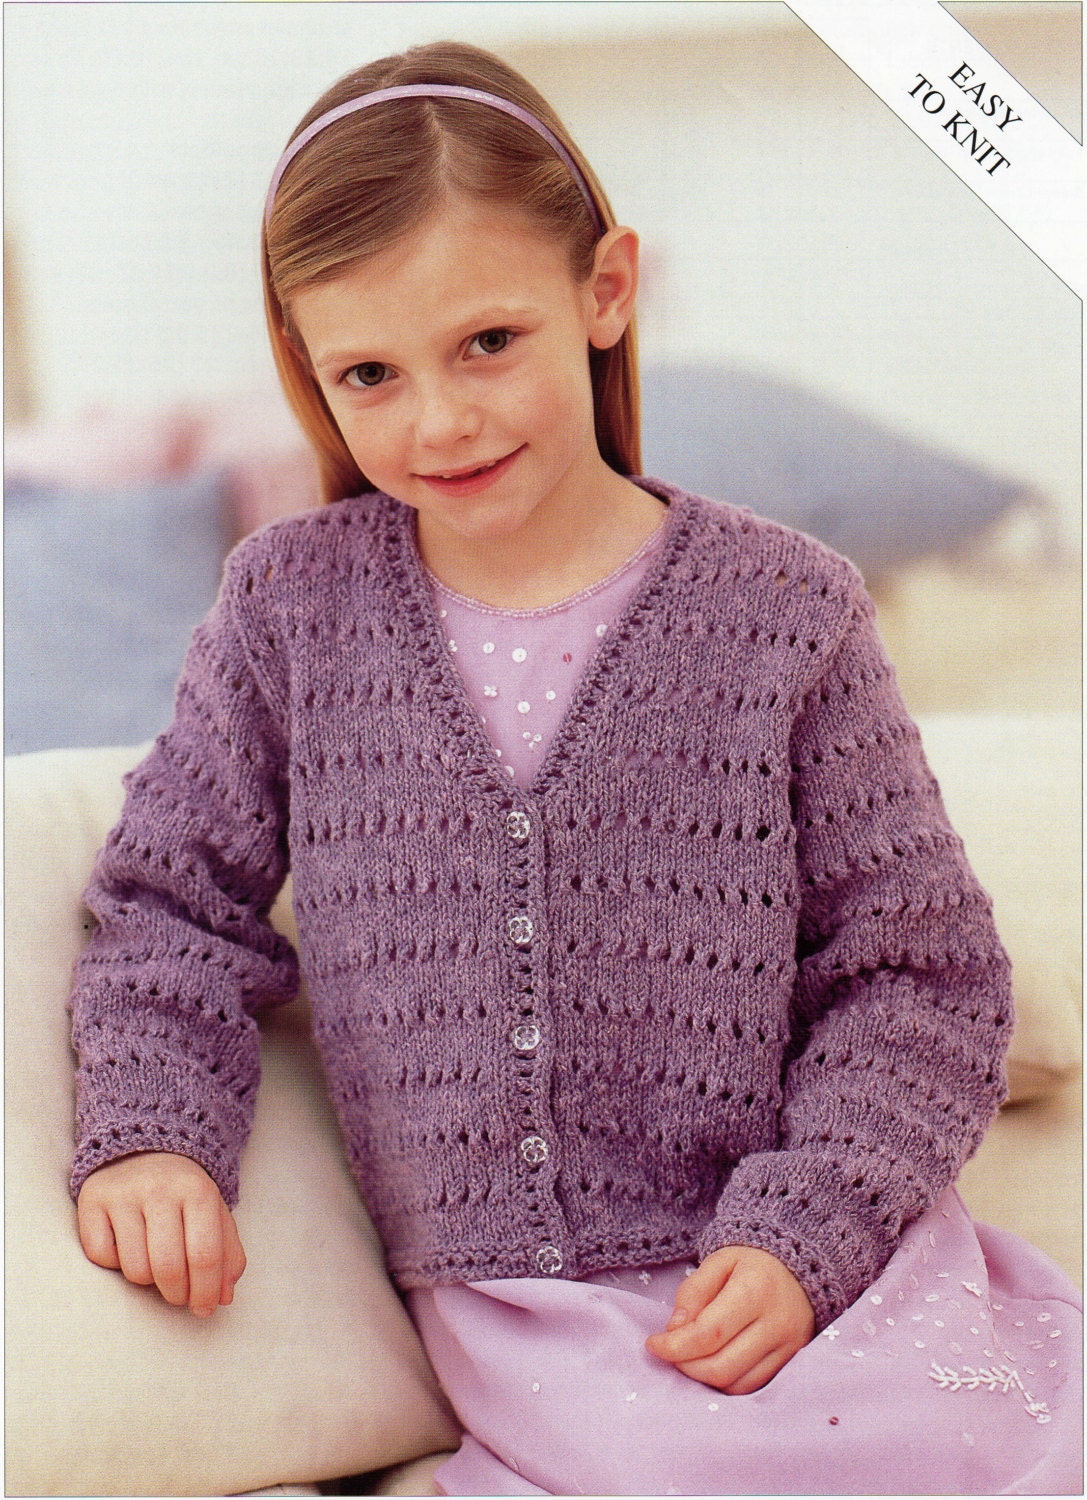 9cdf8ae91 Girls Knitting pattern Girls Cardigan Childs Cardigan Easy Knit V neck  Cardigan 22-32inch DK Childrens Knitting Pattern PDF Instant Download